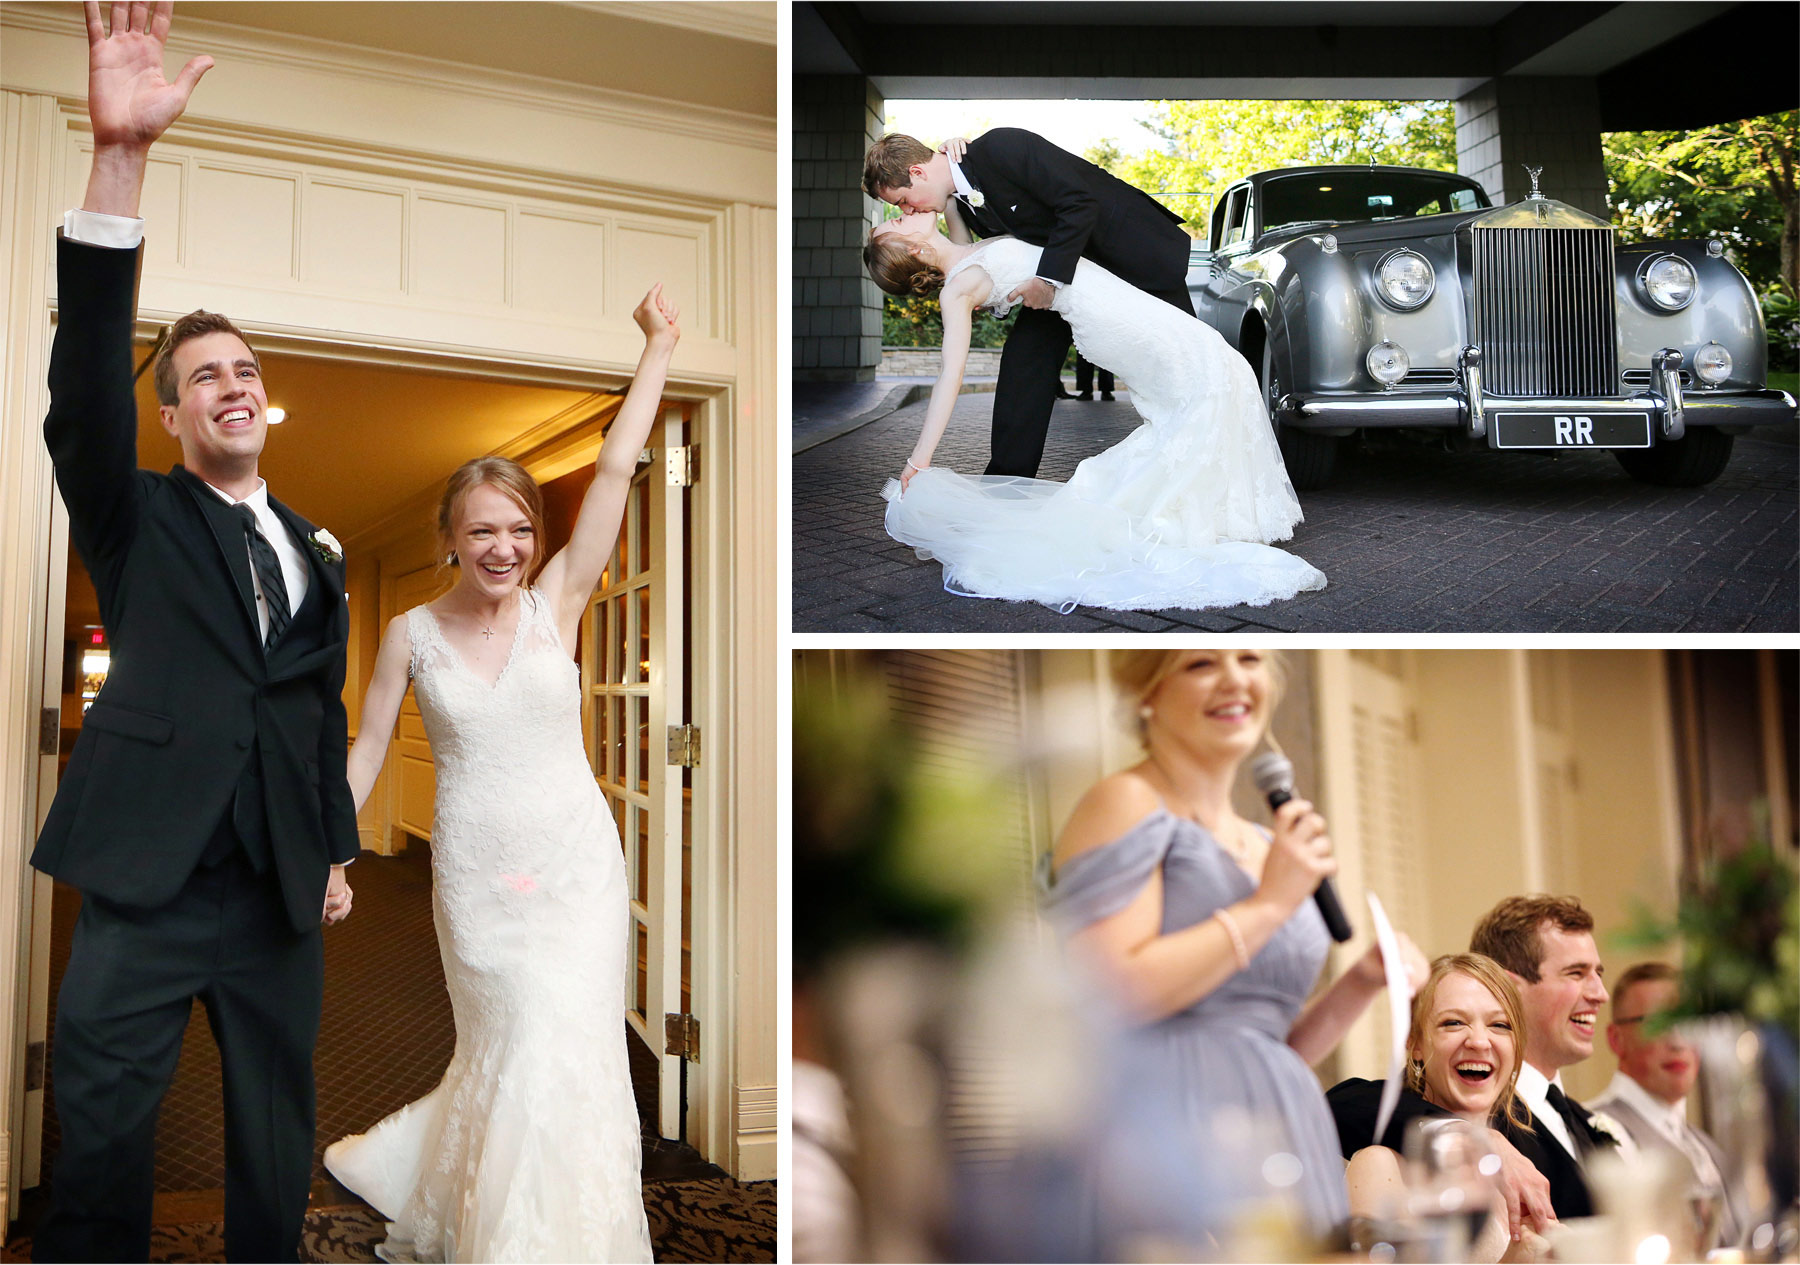 25-Edina-Minnesota-Wedding-Photographer-by-Andrew-Vick-Photography-Summer-Country-Club-Bride-Groom-Kiss-Rolls-Royce-Classic-Vintage-Car-Reception-Entrance-Speeches-Toasts-Laugther-Betsy-and-Jon.jpg